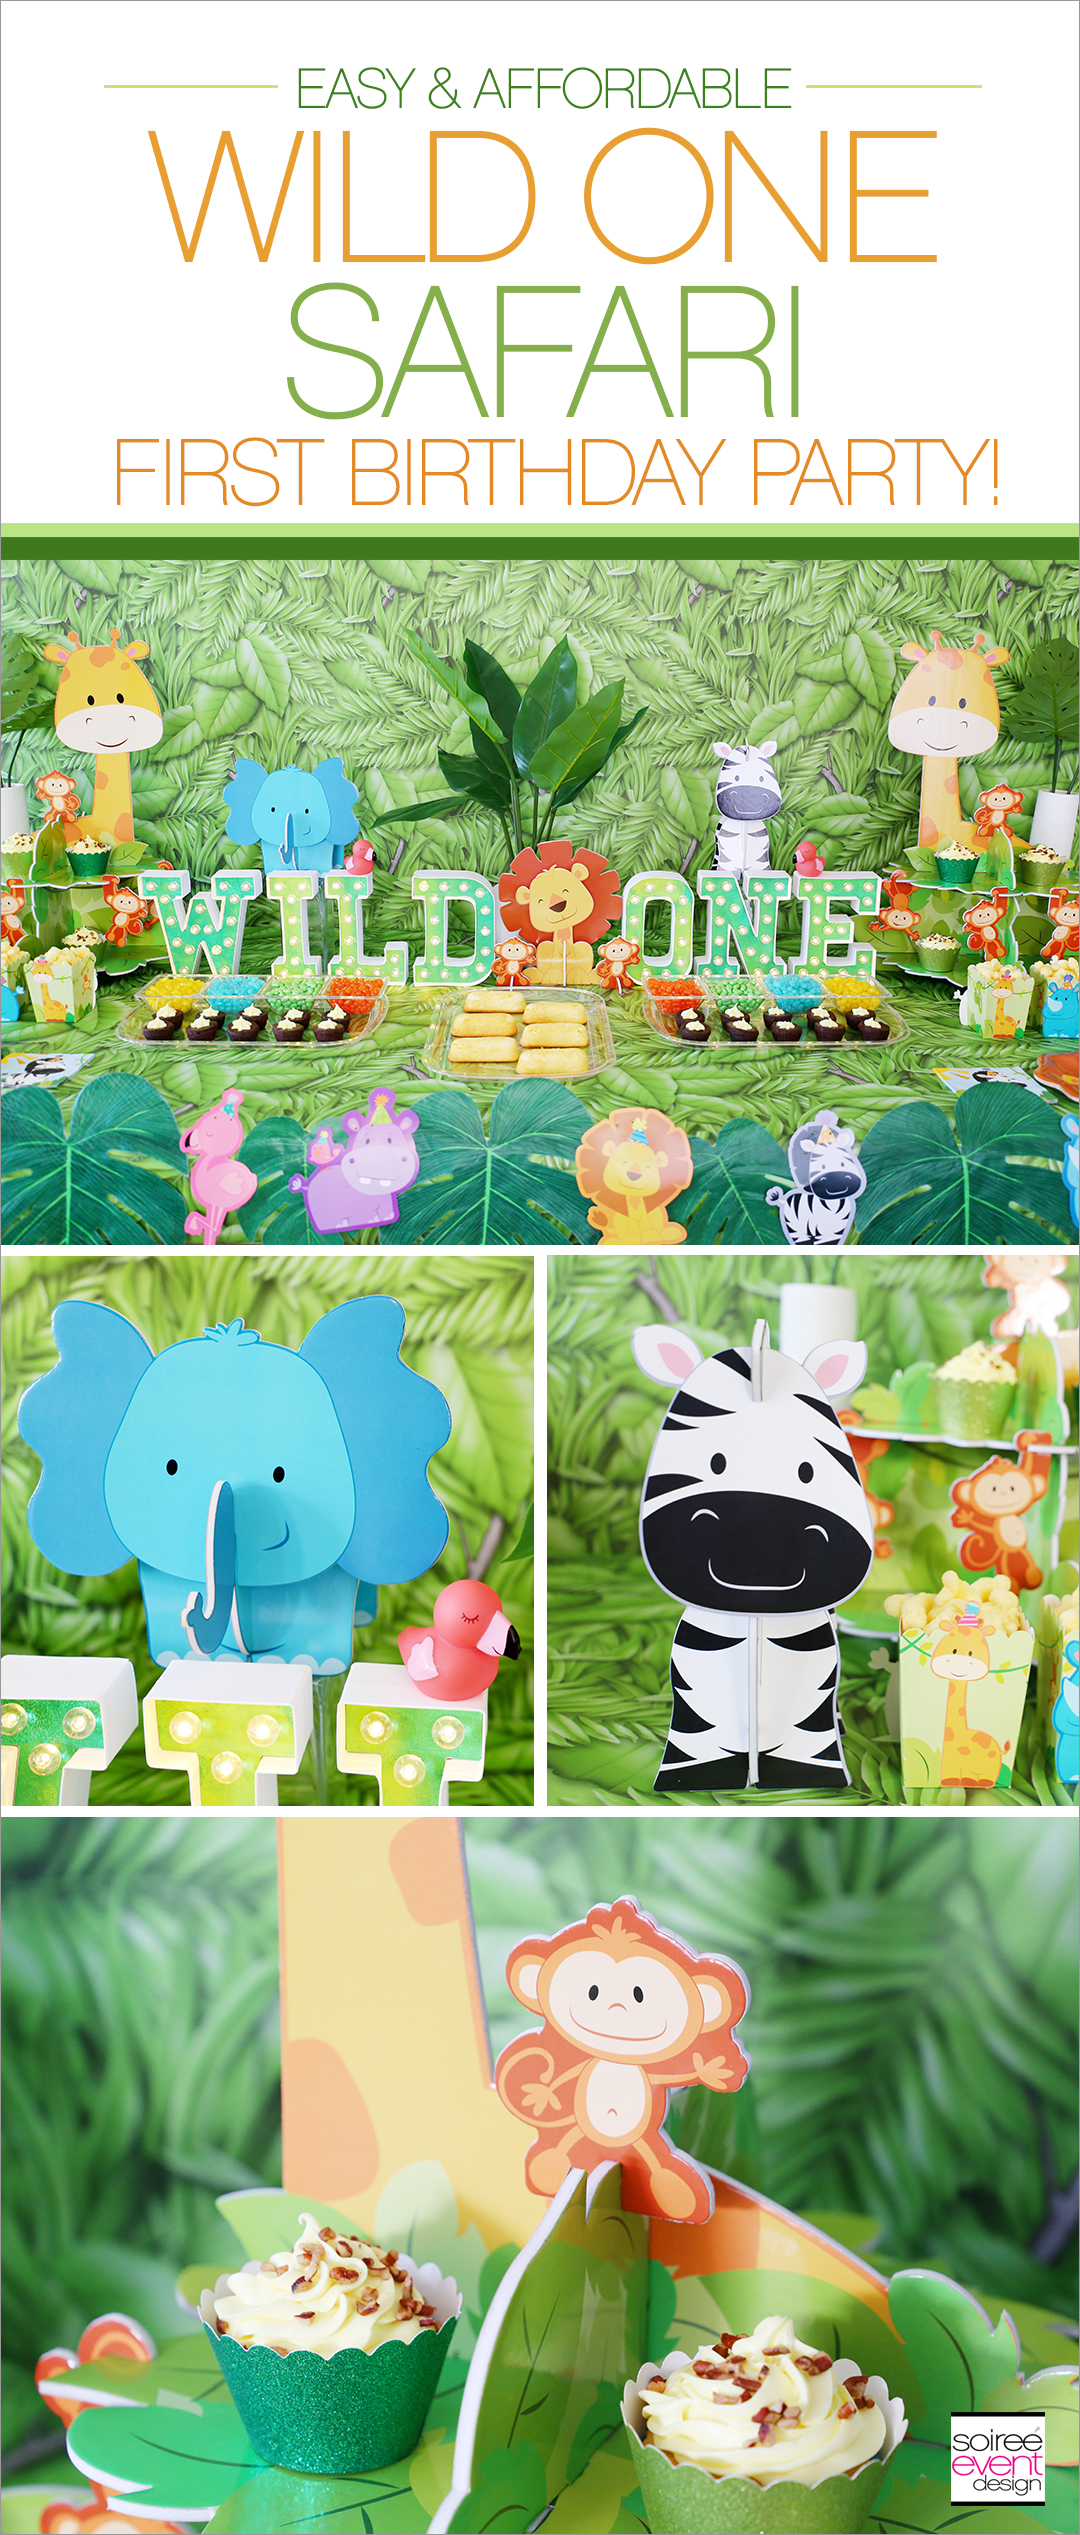 Wild ONE Safari First Birthday Party Ideas - Pin